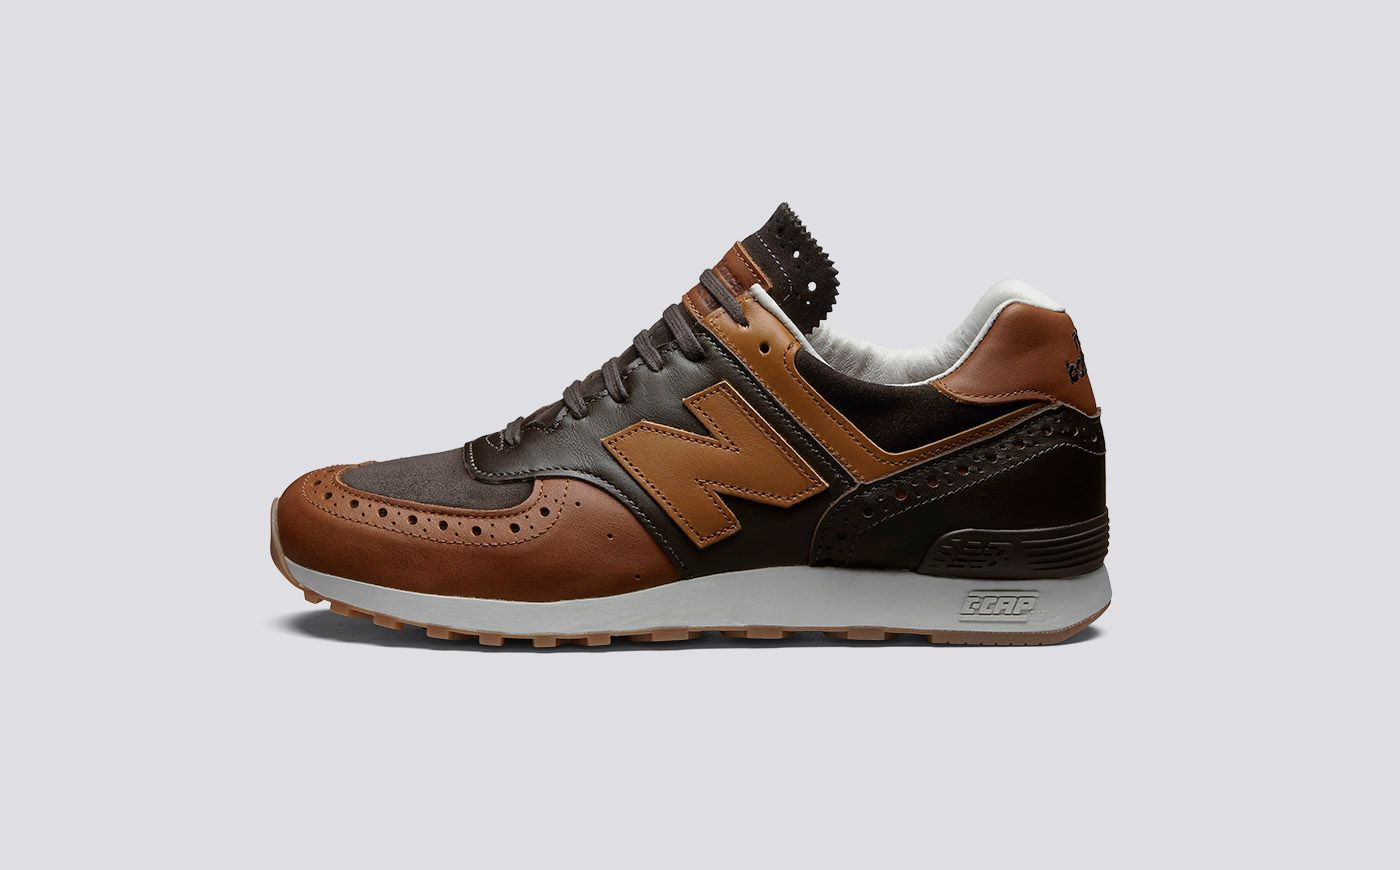 online retailer 1ce4d 7415e Grenson X New Balance M576 Men's The second version of the ...